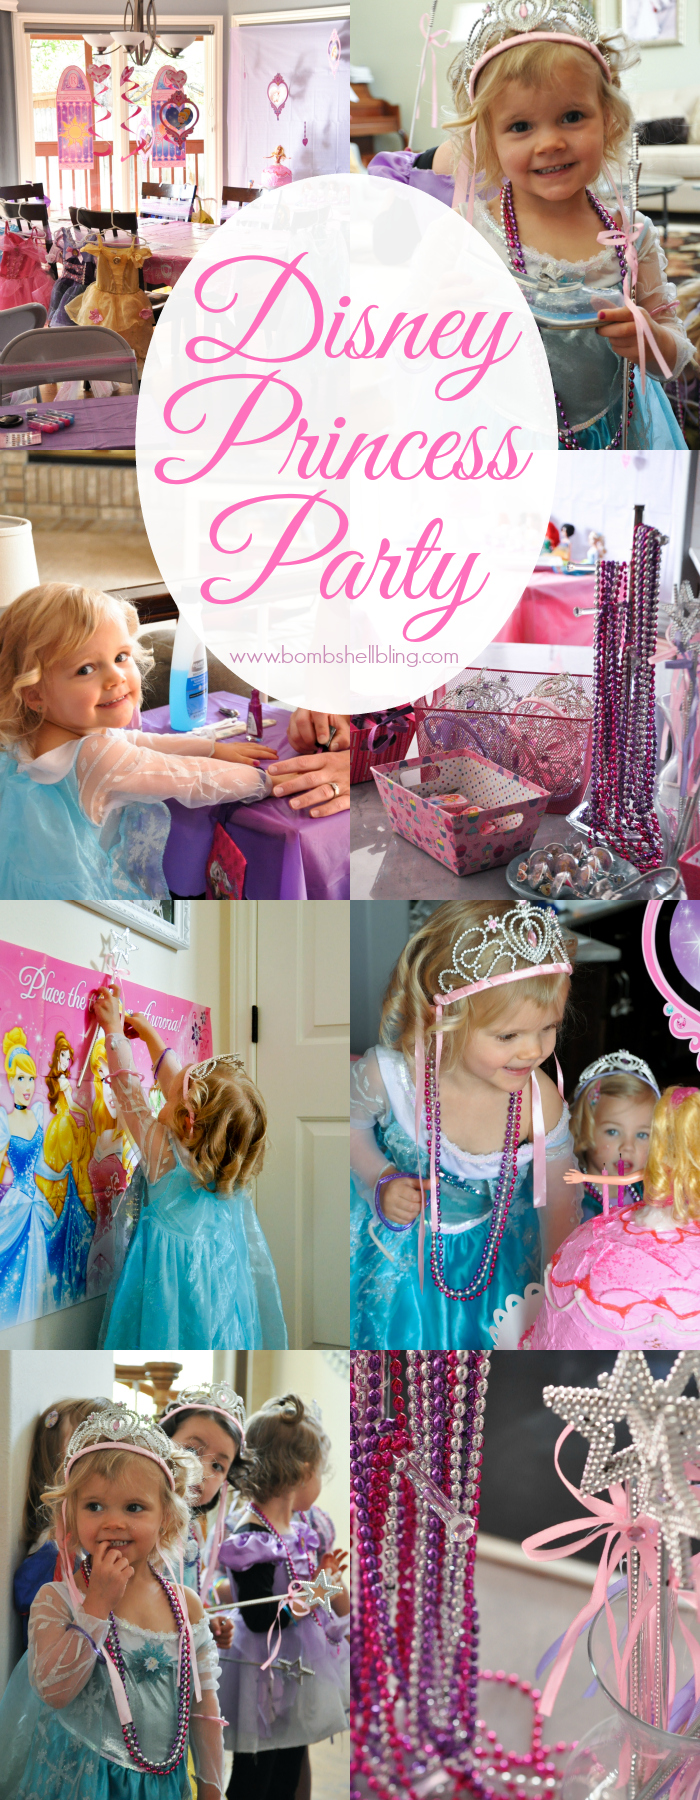 This Disney Princess Bippity Boppity Boutique party is DARLING!!